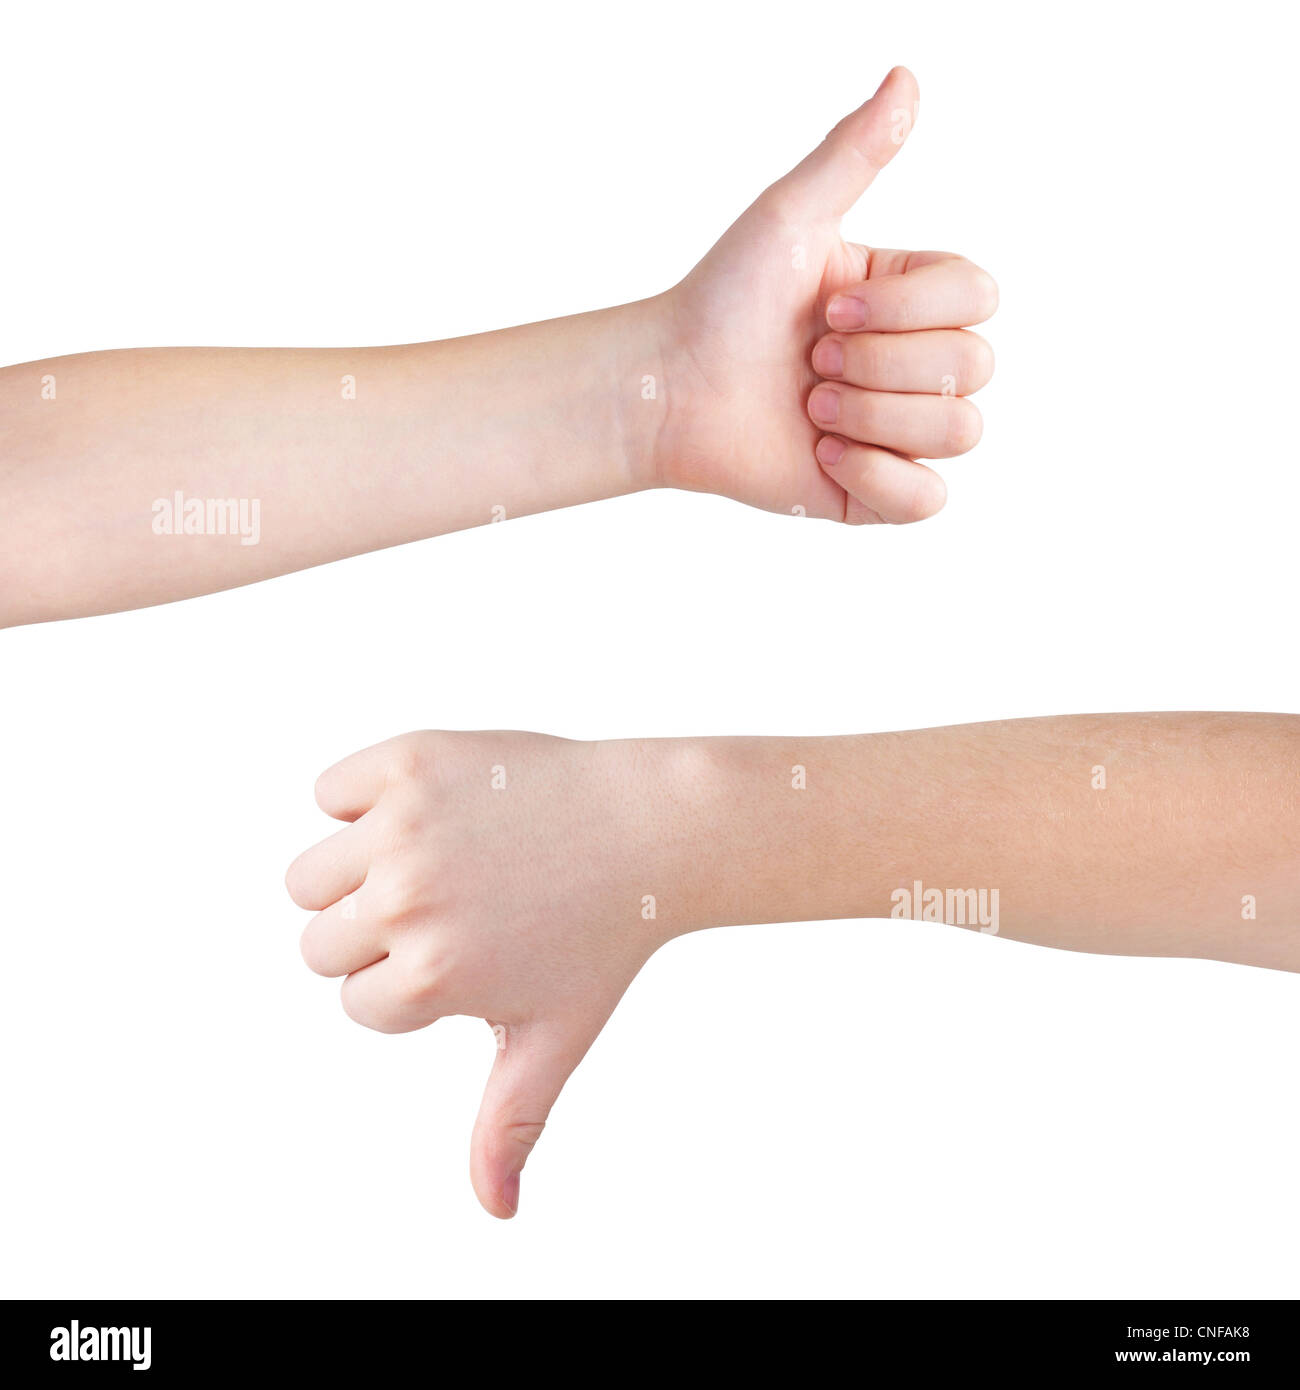 Thumbs up and down, isolated on white, clipping path - Stock Image